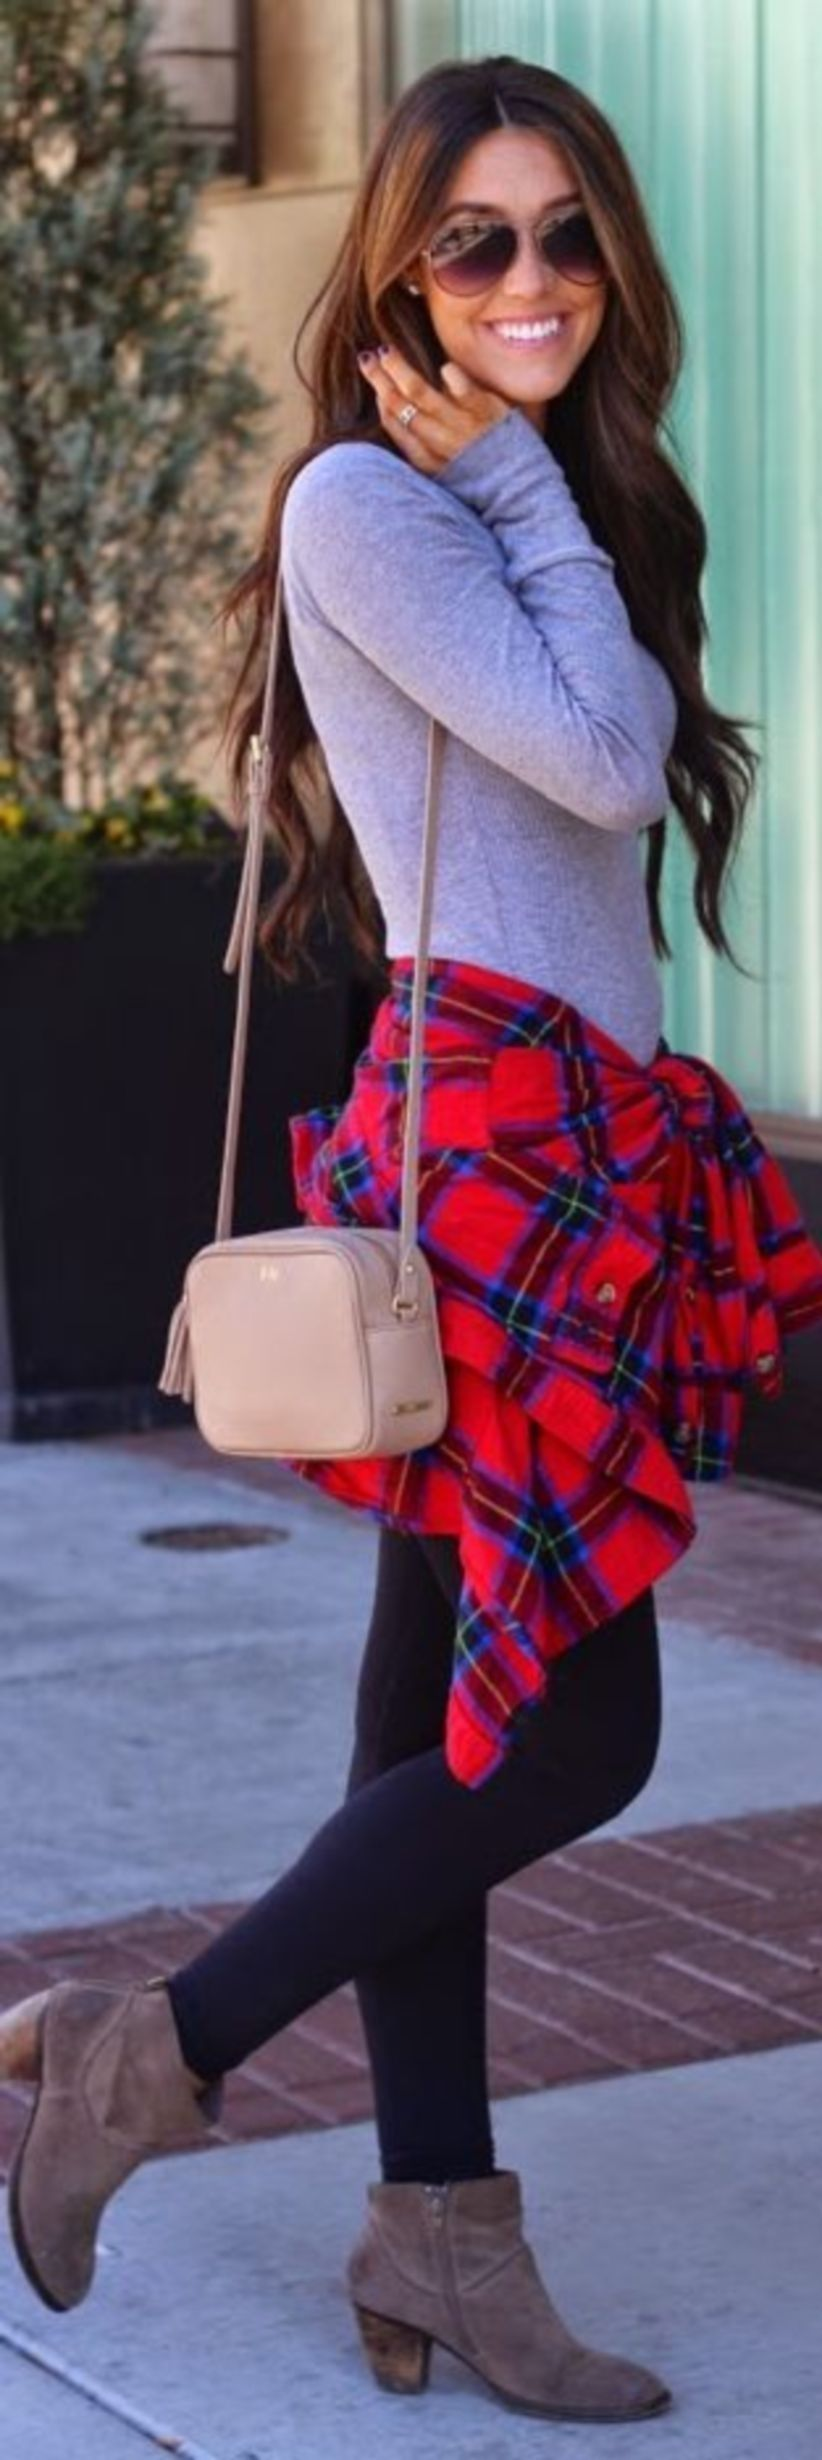 Woman red flannel outfits   Comfy Outfit Ideas For Fall  Women Fashion  Pinterest  Fashion